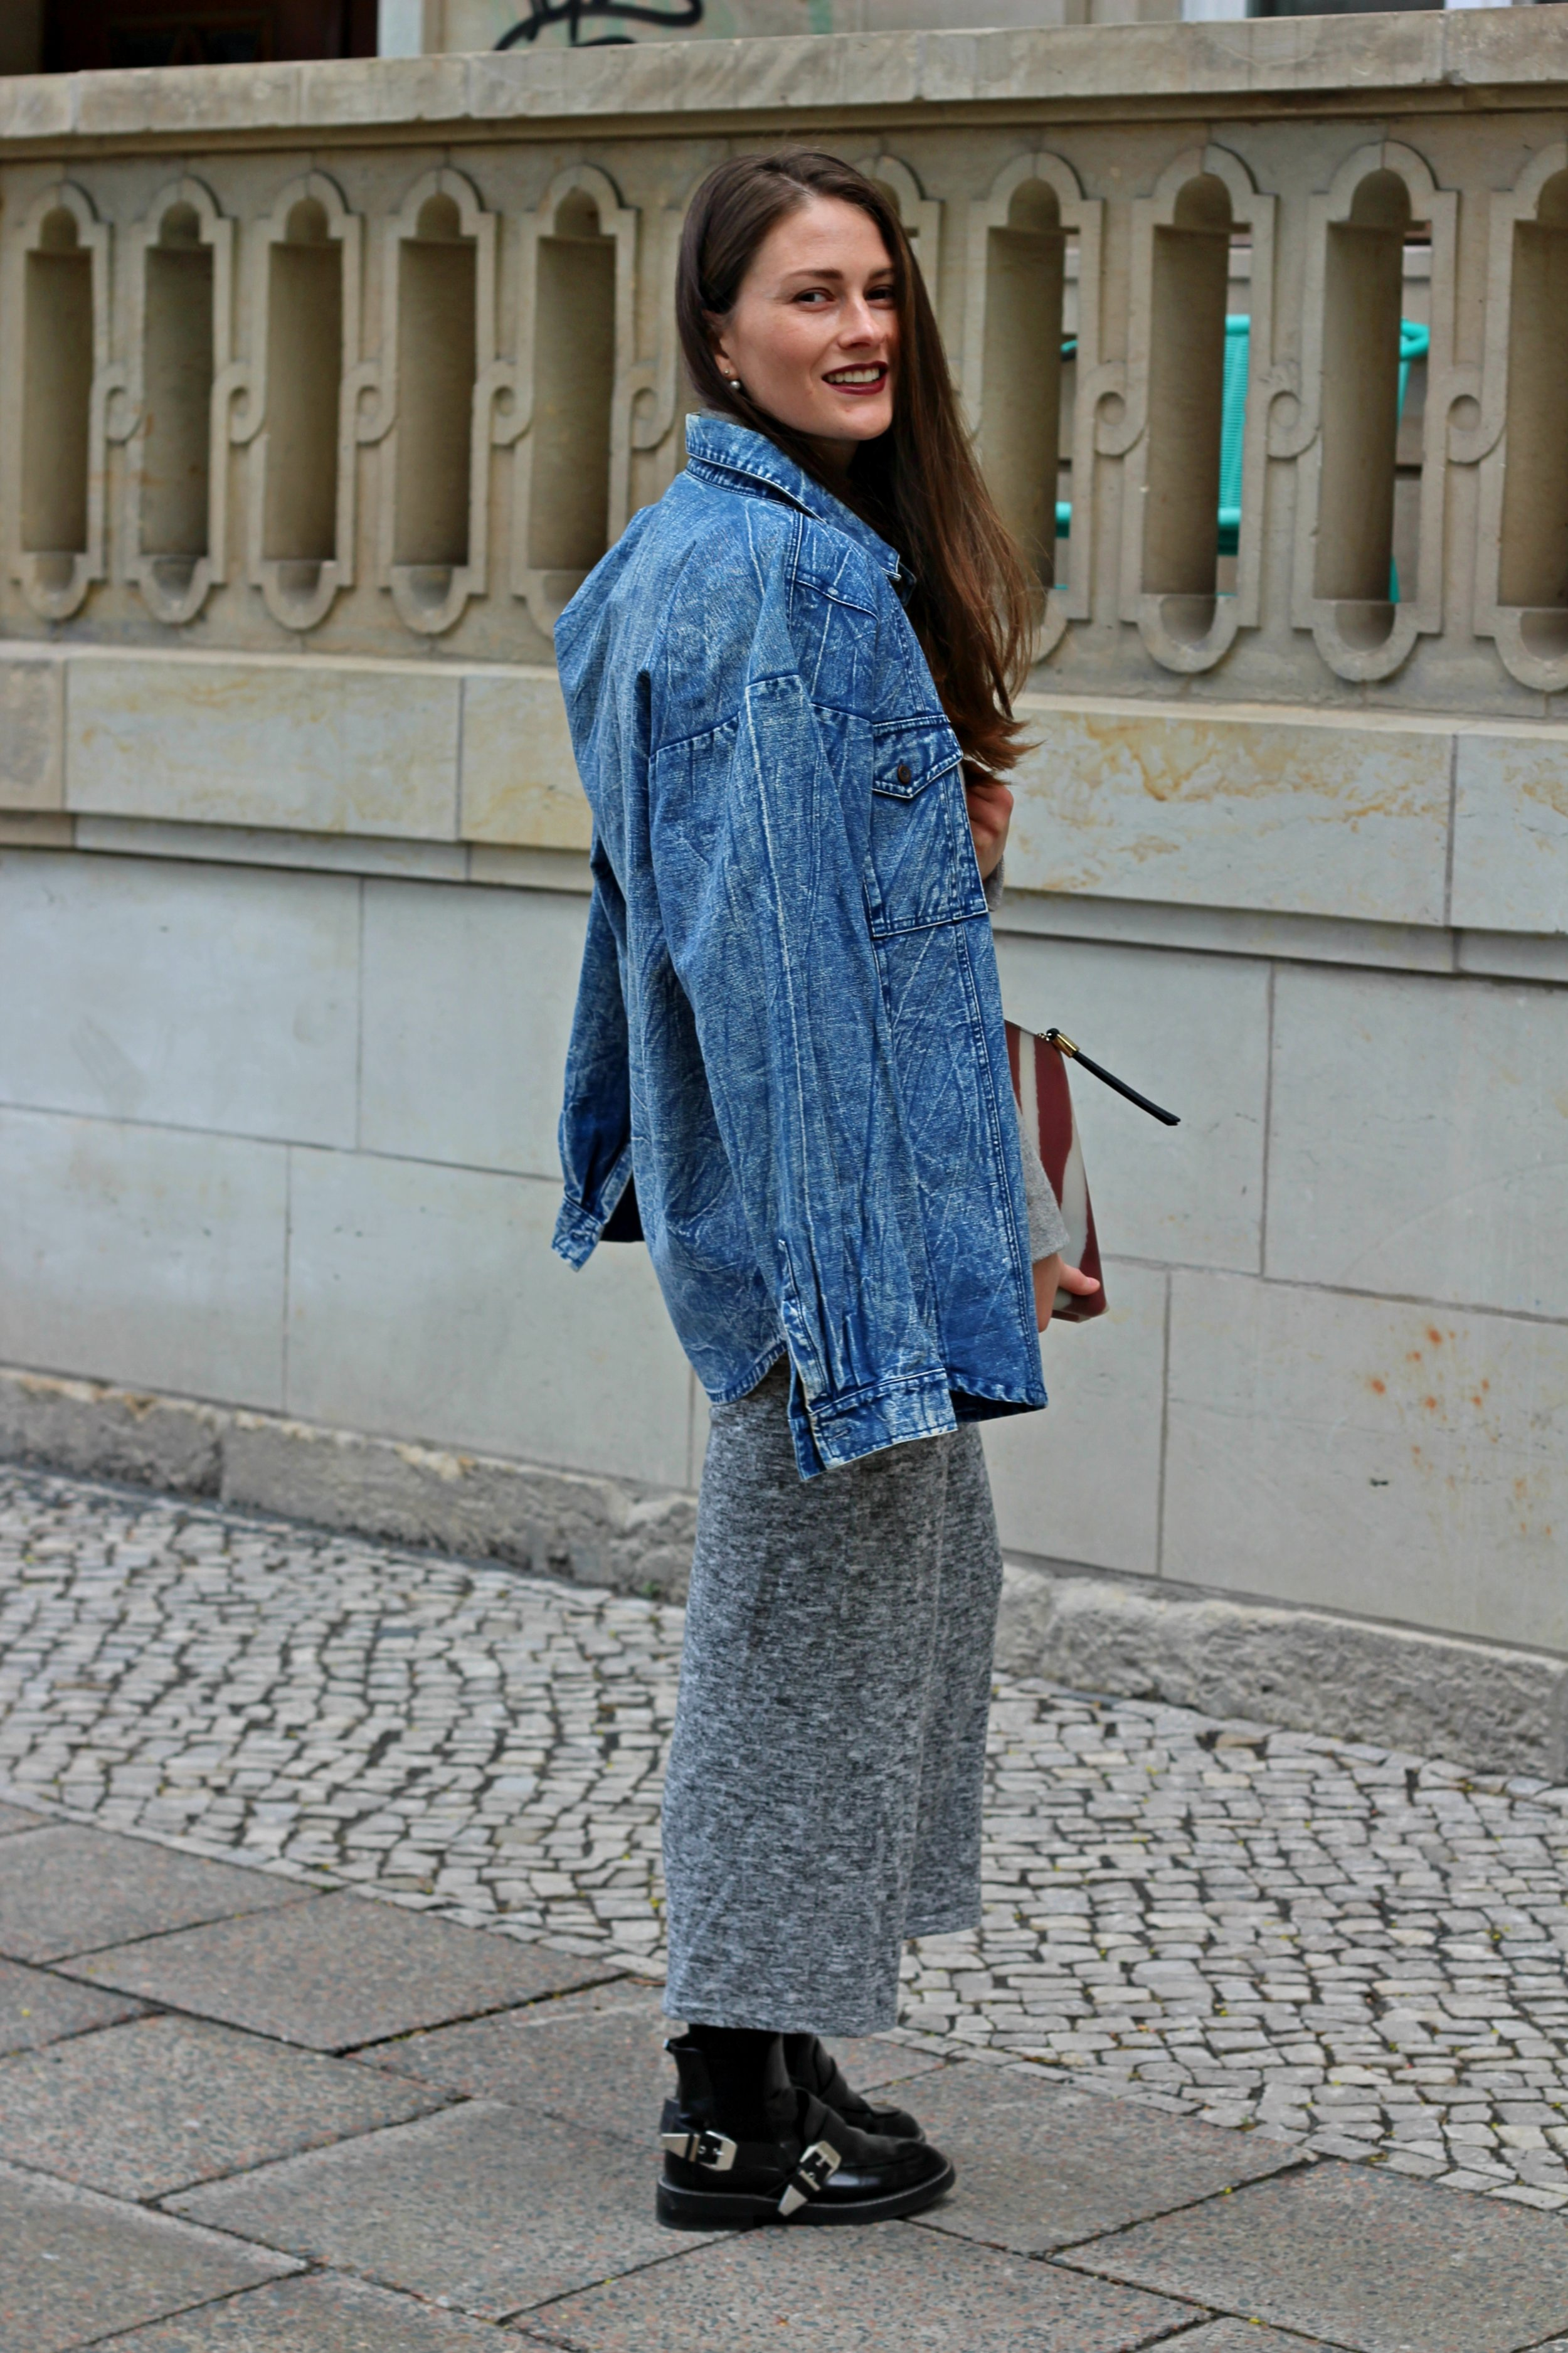 annaporter-denim-jacket-culottes-chelsea-boots-90's-outfit-style-fashion-blogger-3